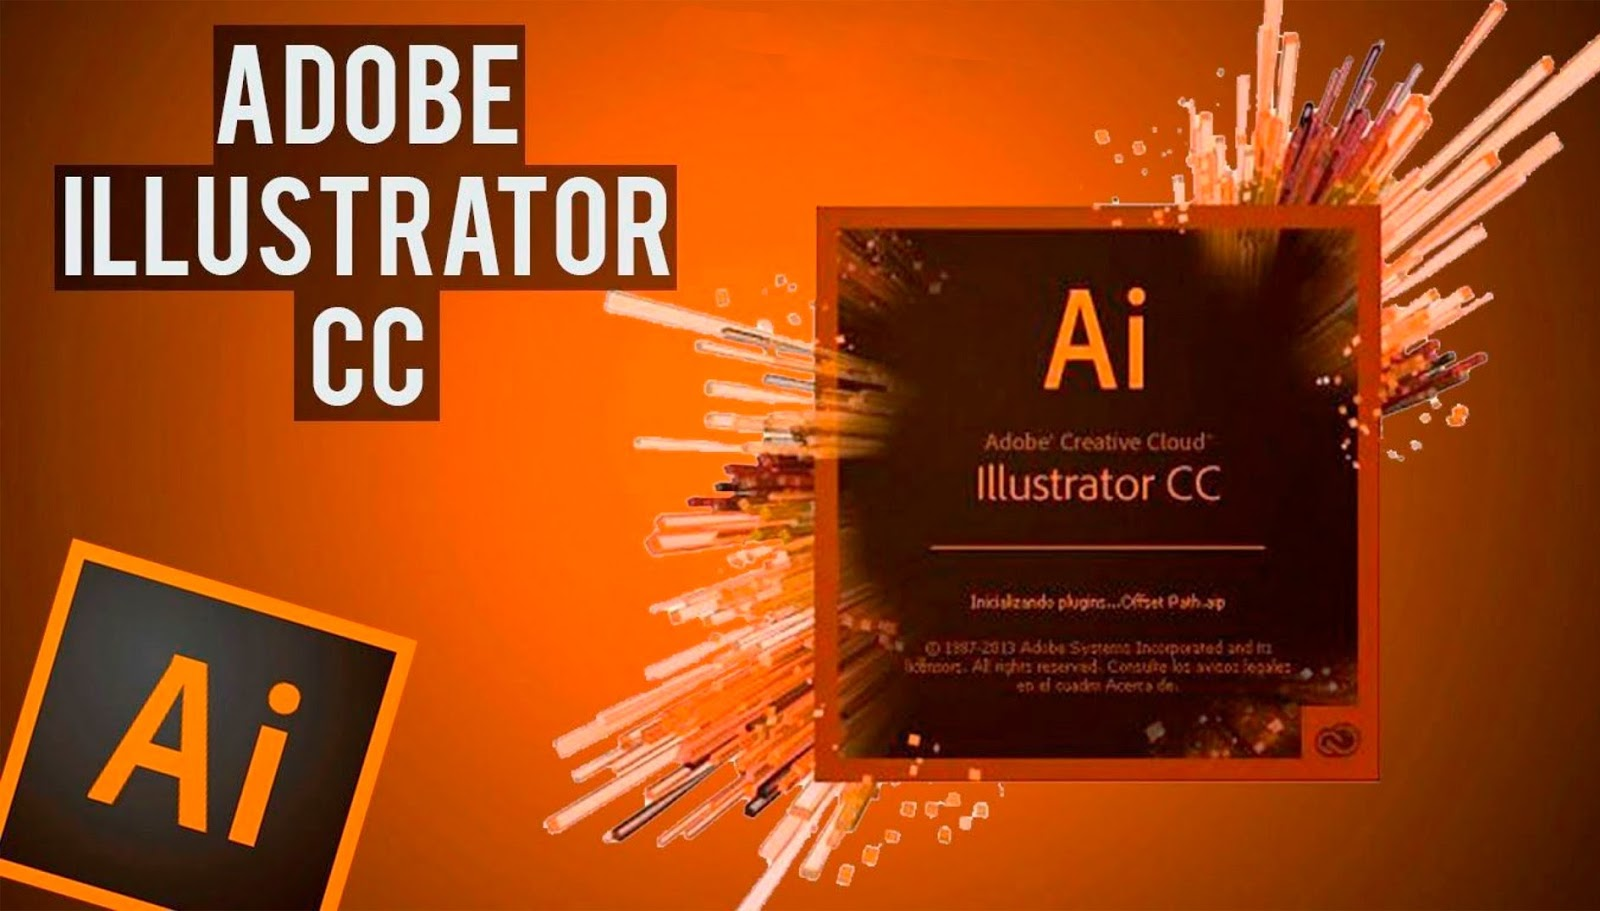 Adobe Illustrator CC 17 Pre Crack License Key Free